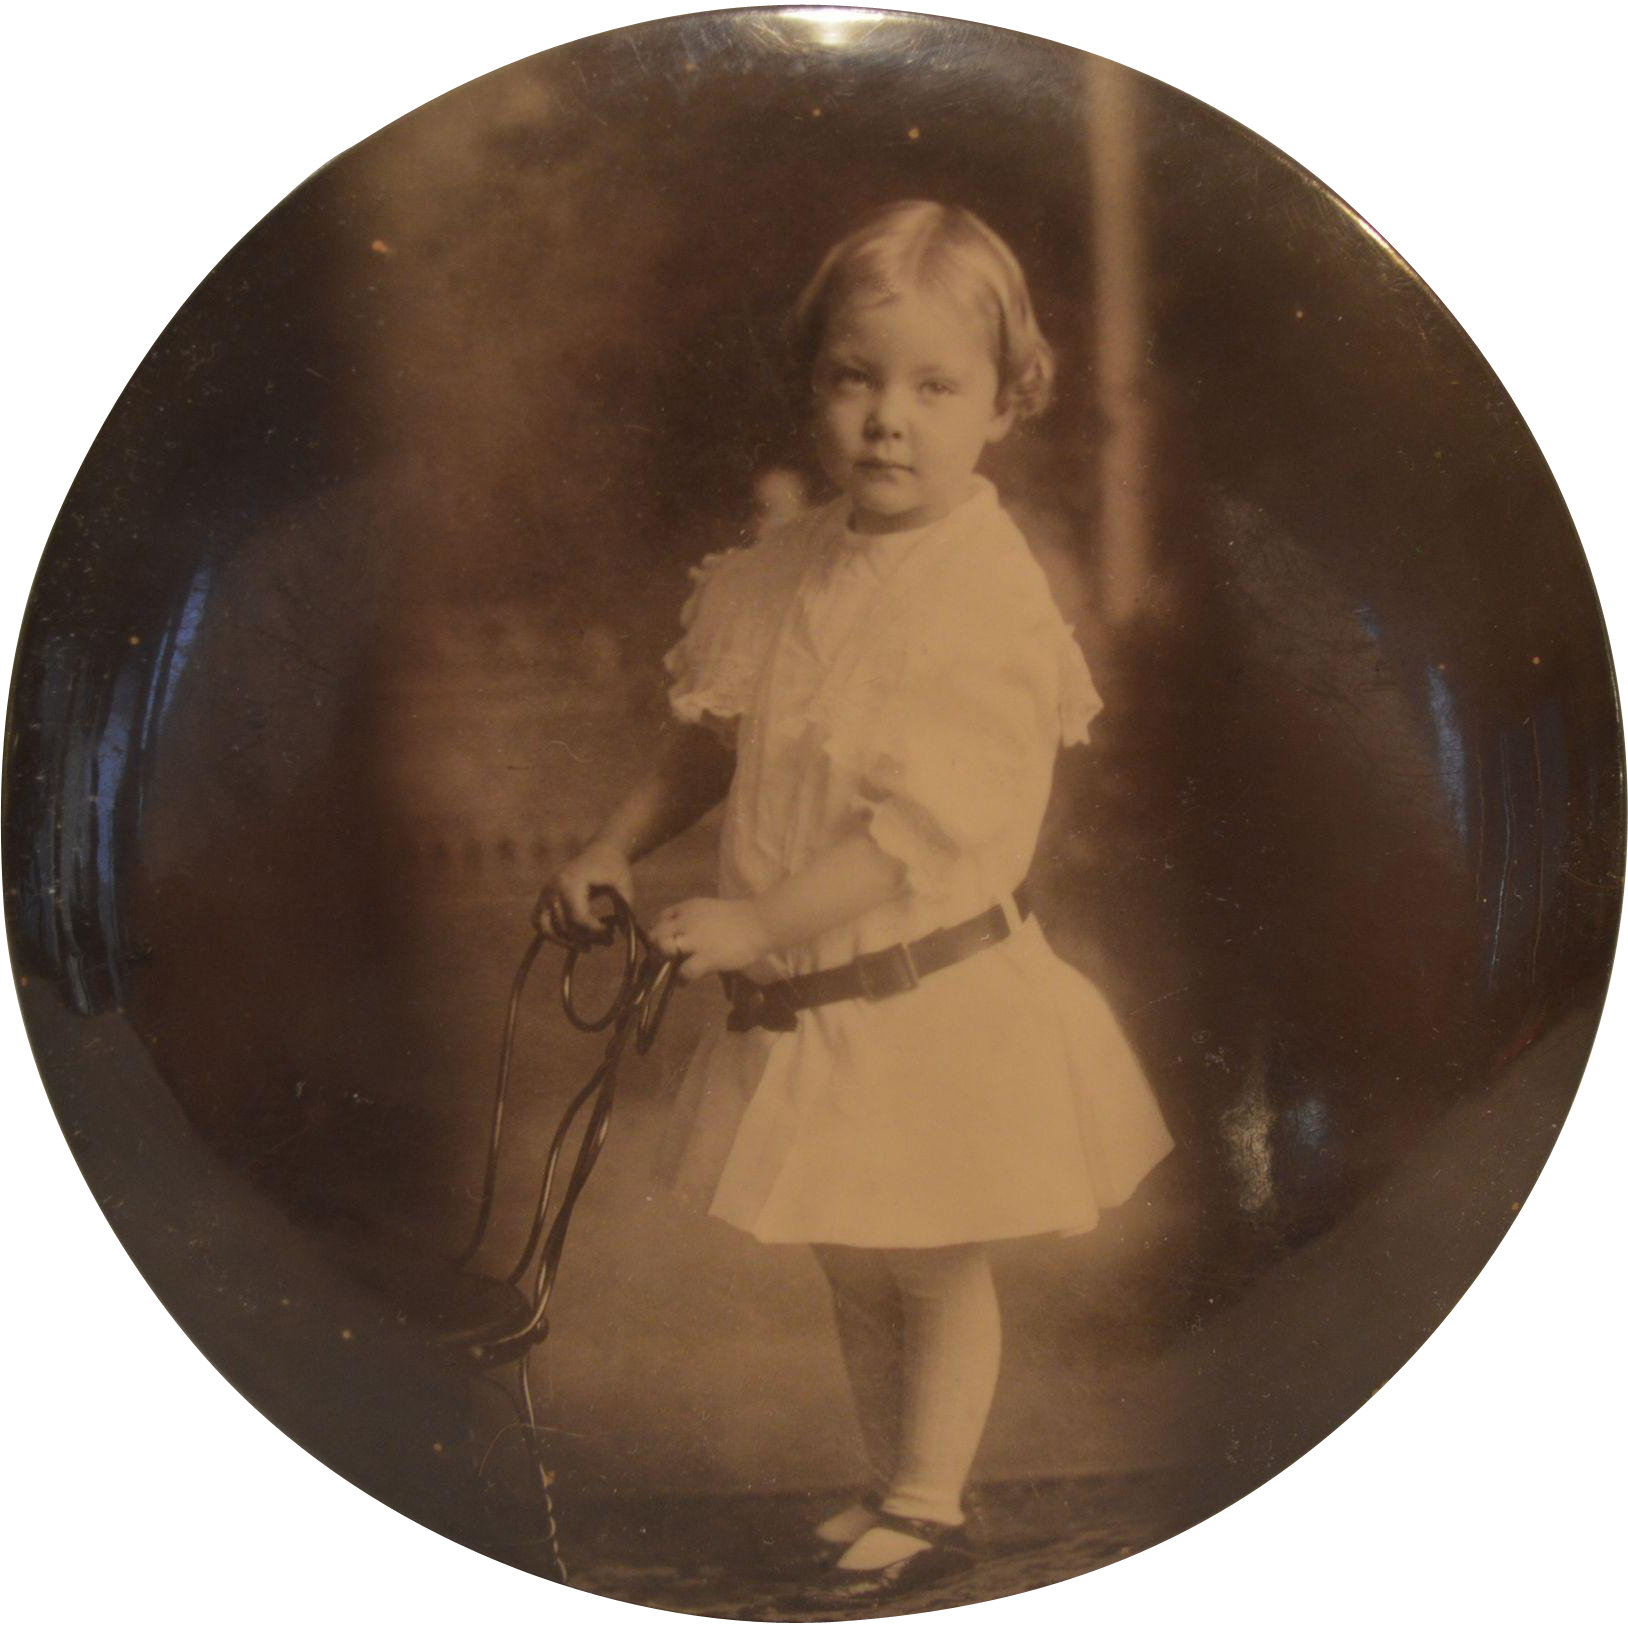 Vintage Celluloid Photographic Medallion Adorable Baby Columbia Medallion Studios Chicago Photographic Button, Plaque 1910's